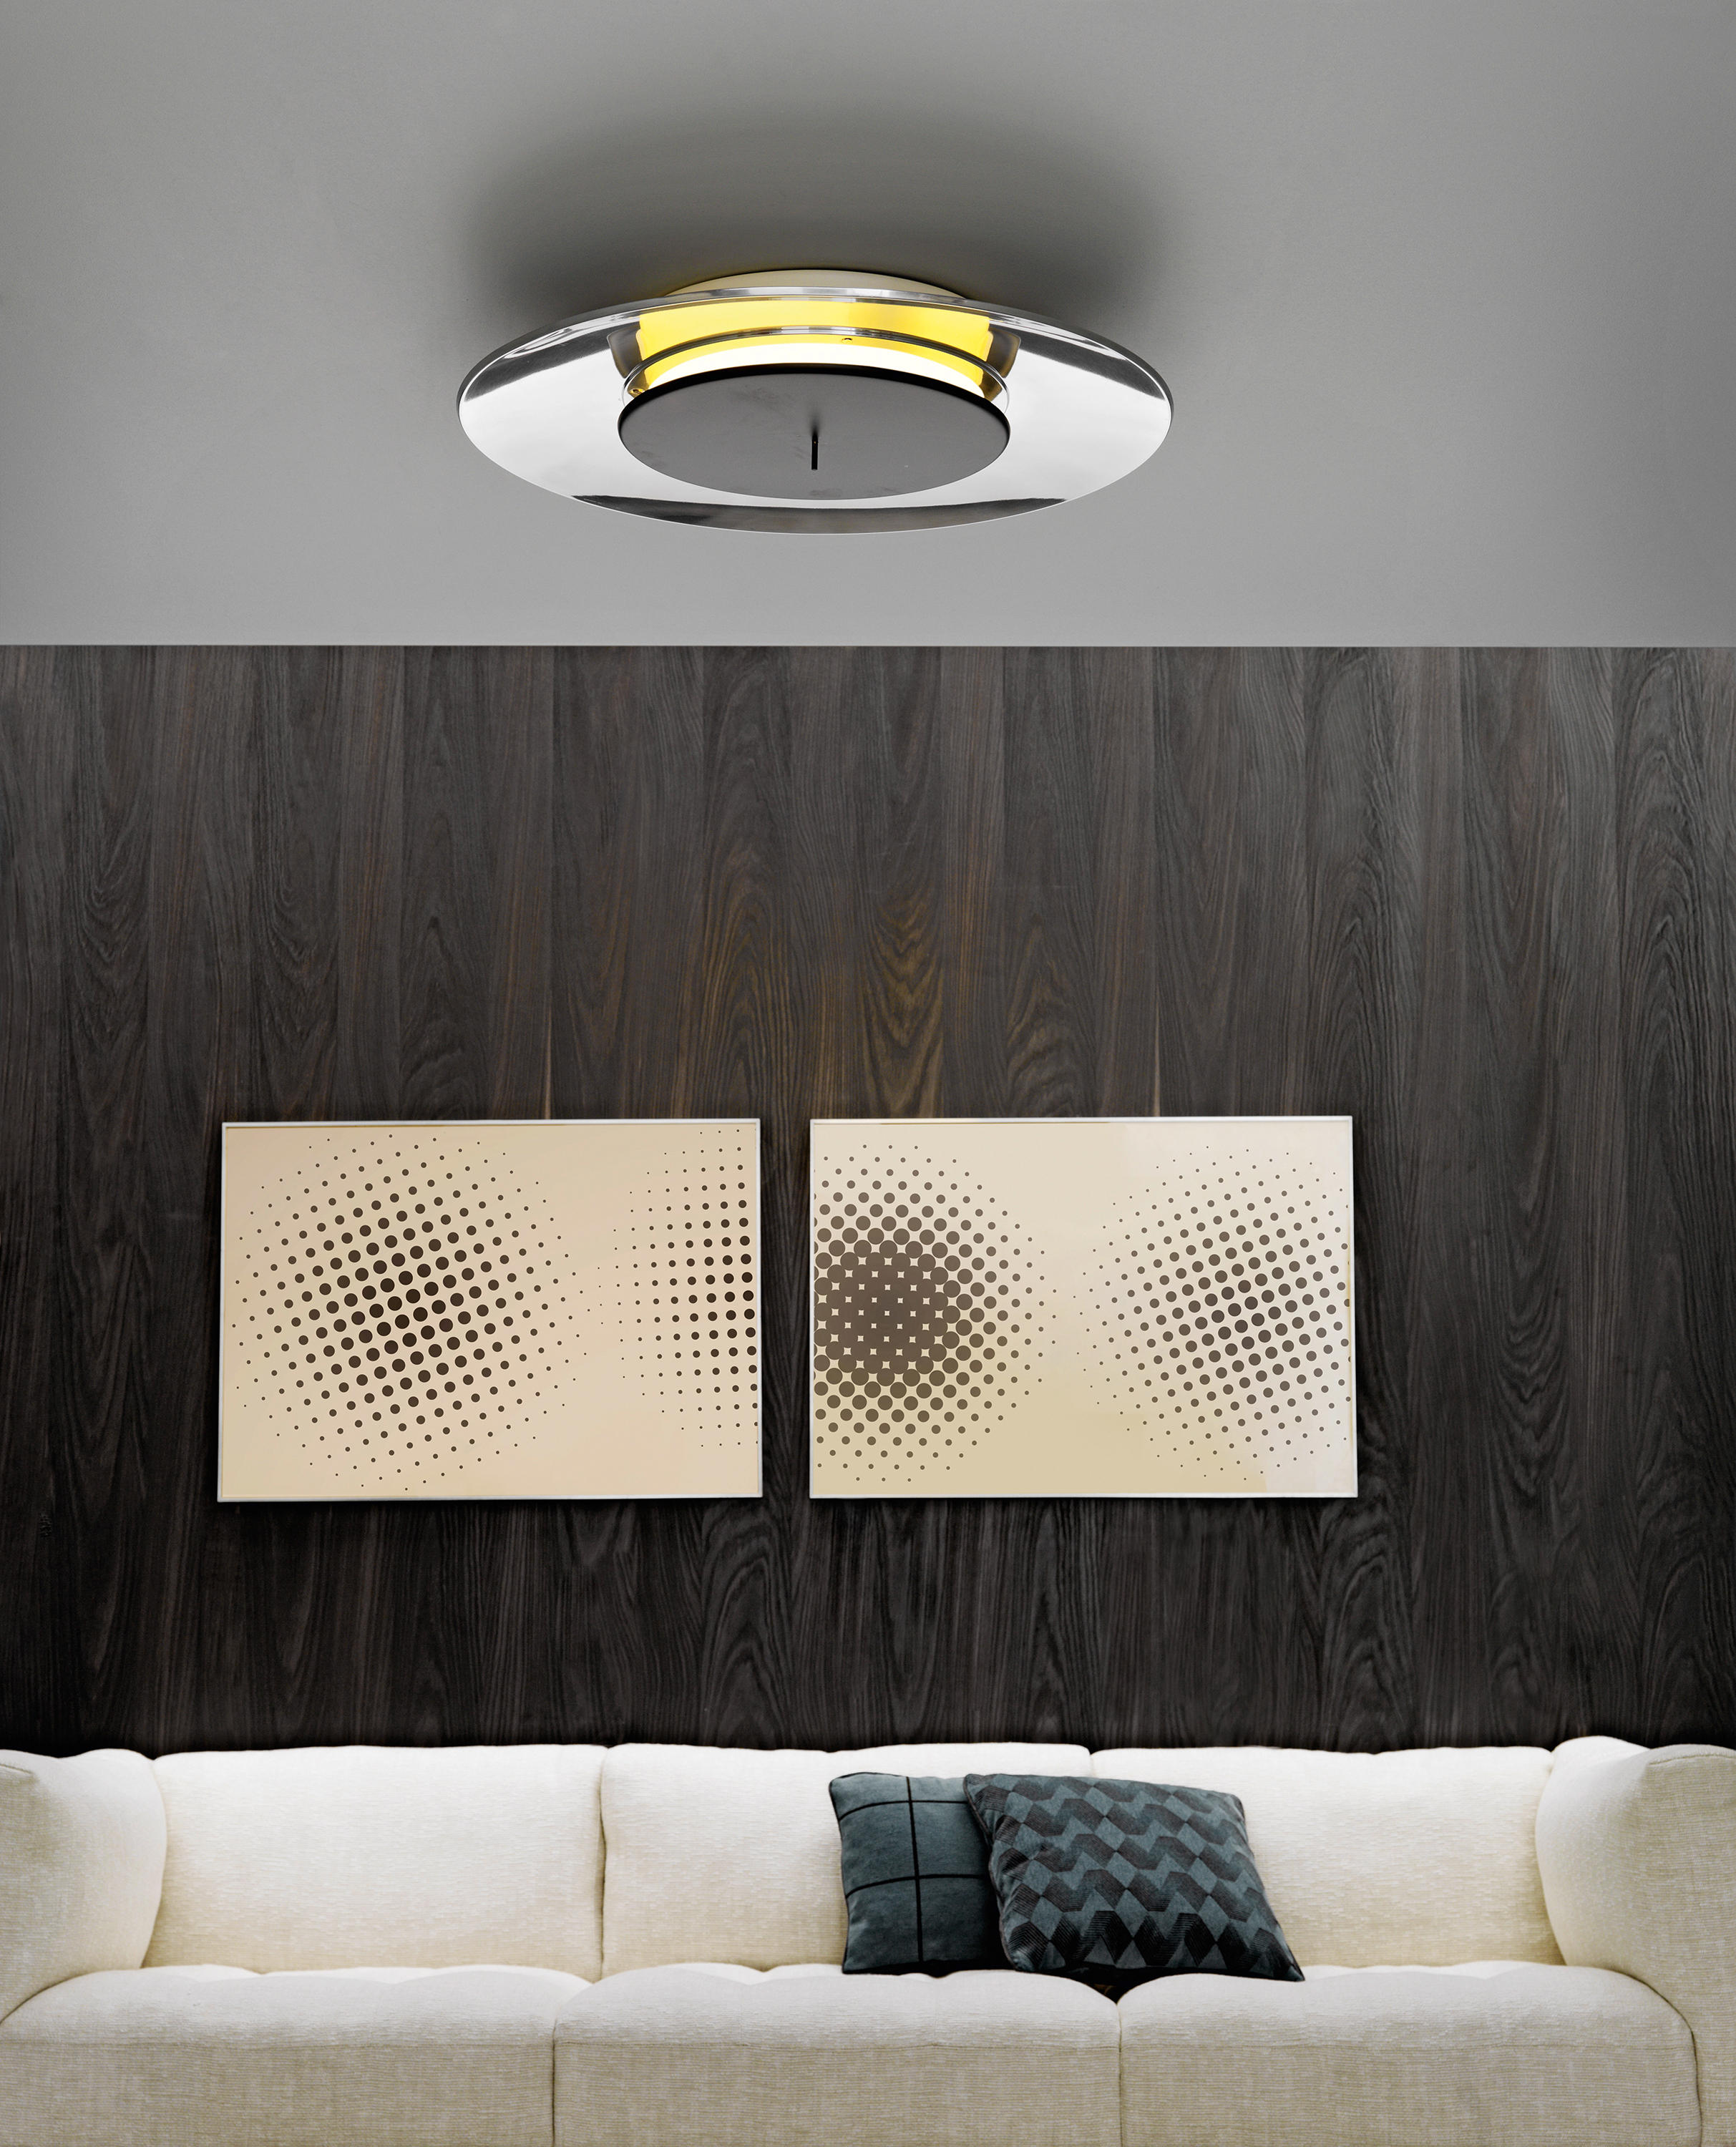 Lunaire Wall And Ceiling Lamp By FontanaArte | Wall Lights